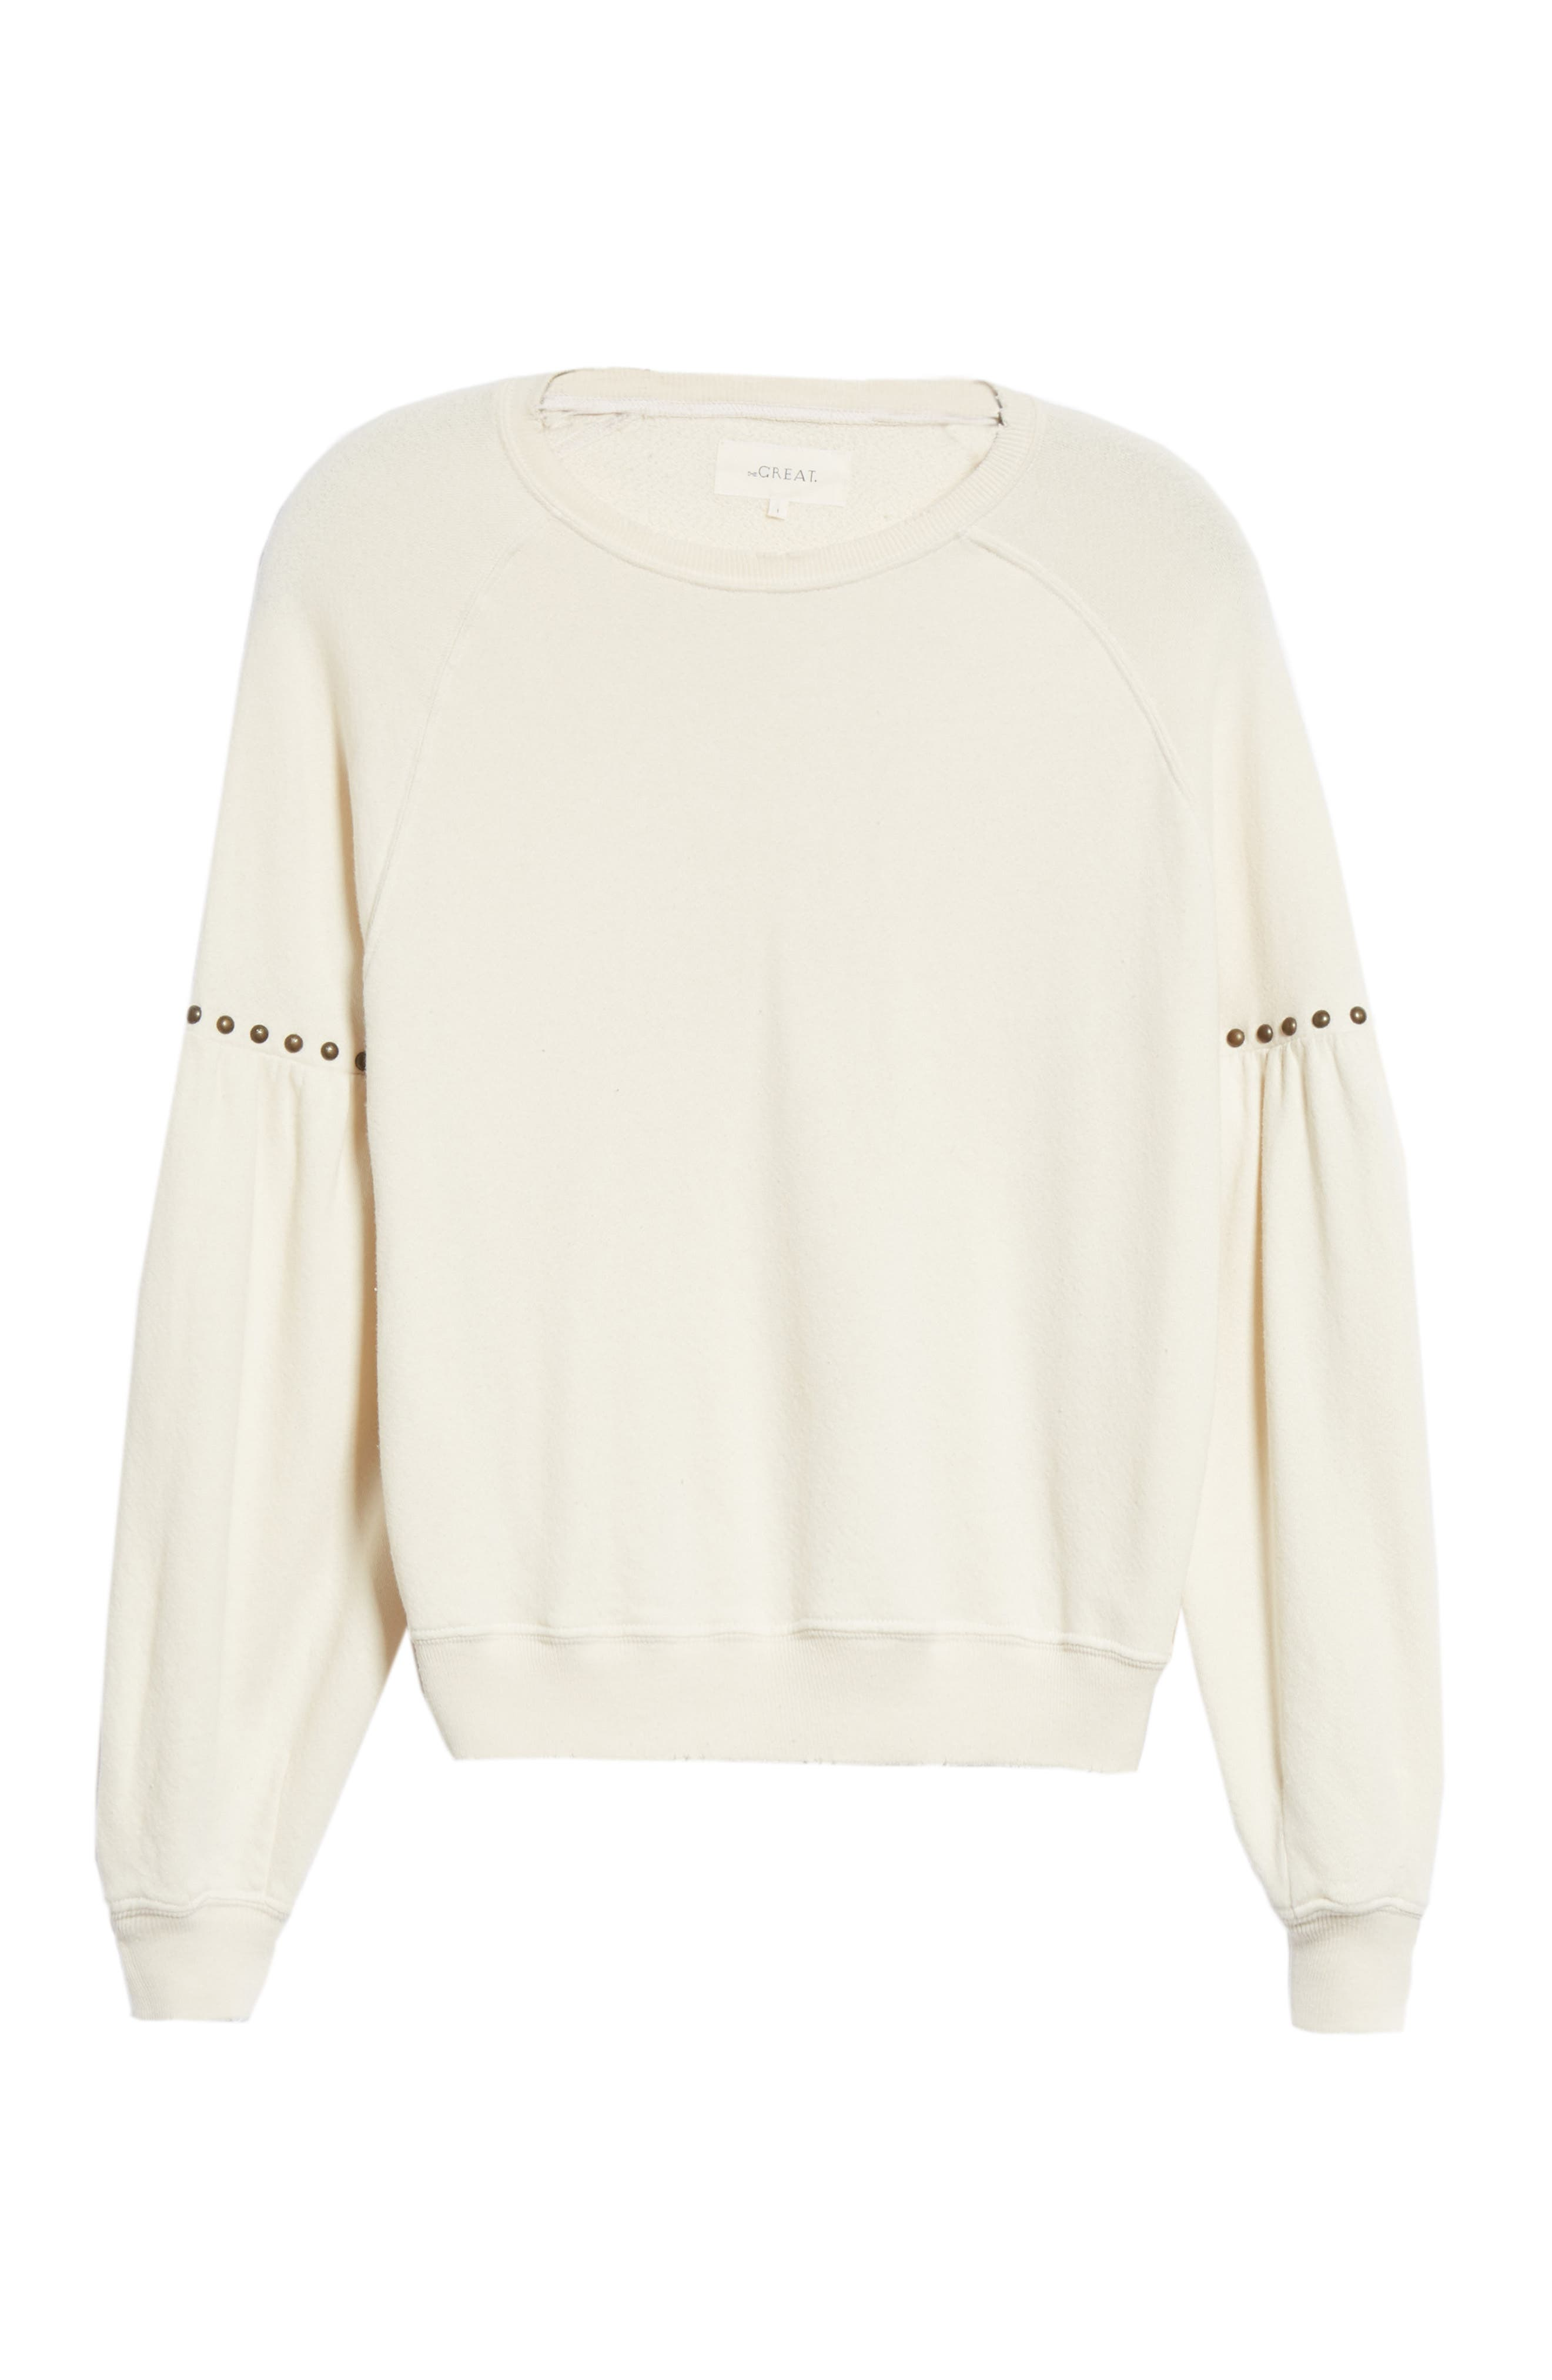 The Bishop Sleeve Studded Sweatshirt,                             Alternate thumbnail 6, color,                             WASHED WHITE W/ STUDS